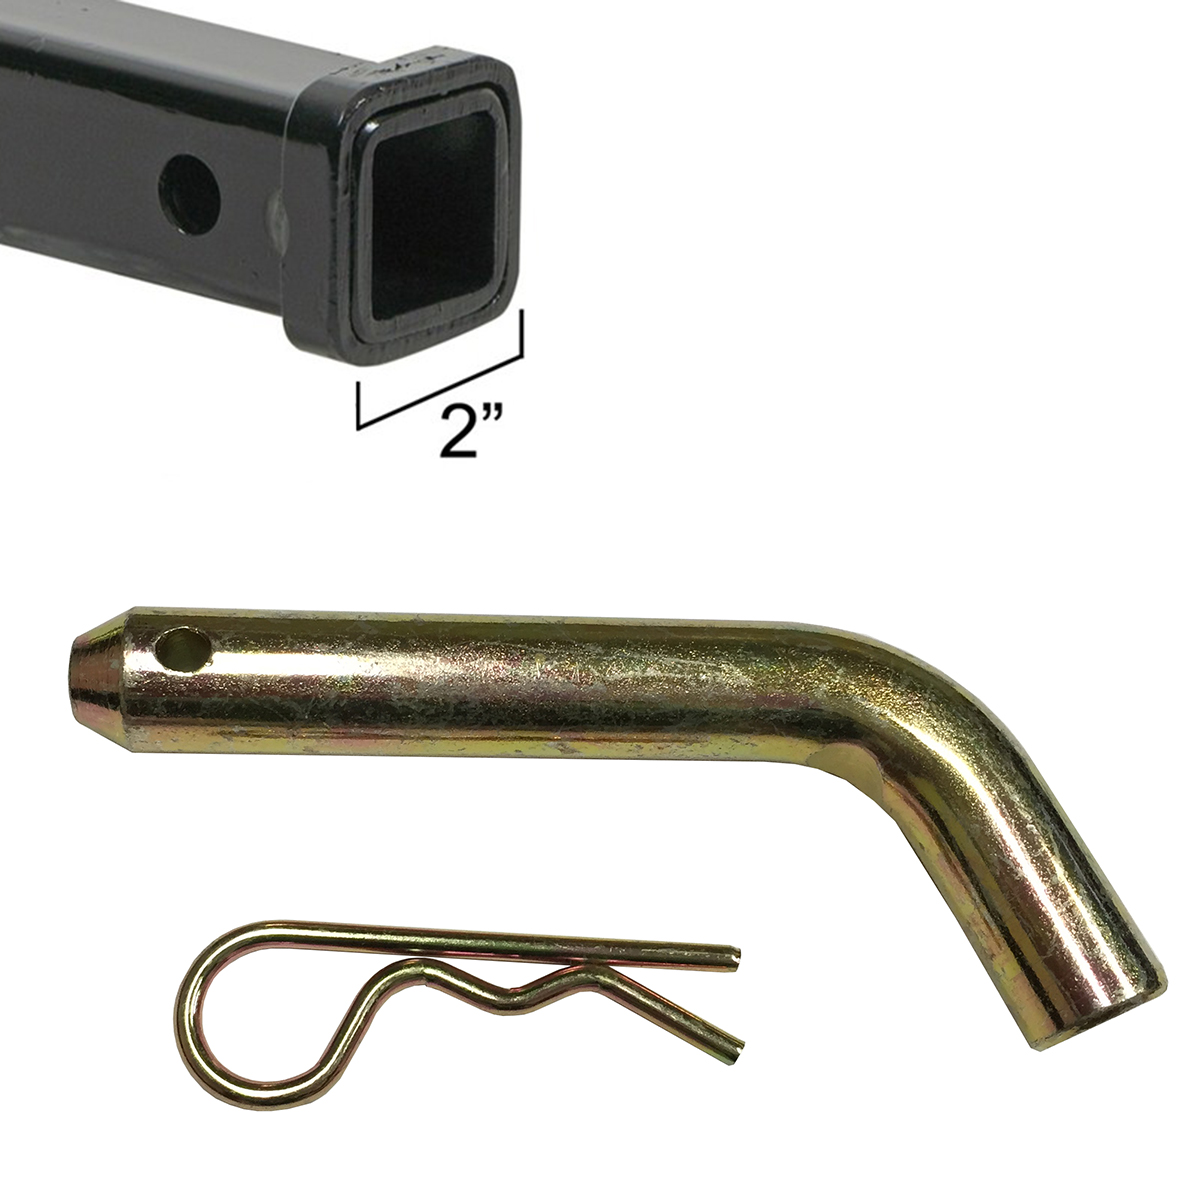 """Apontus Ball Mount Hitch Pin 5 8"""" for 2"""" Receiver Luggage Carrier Basket Trailer RV SUV by Apontus"""